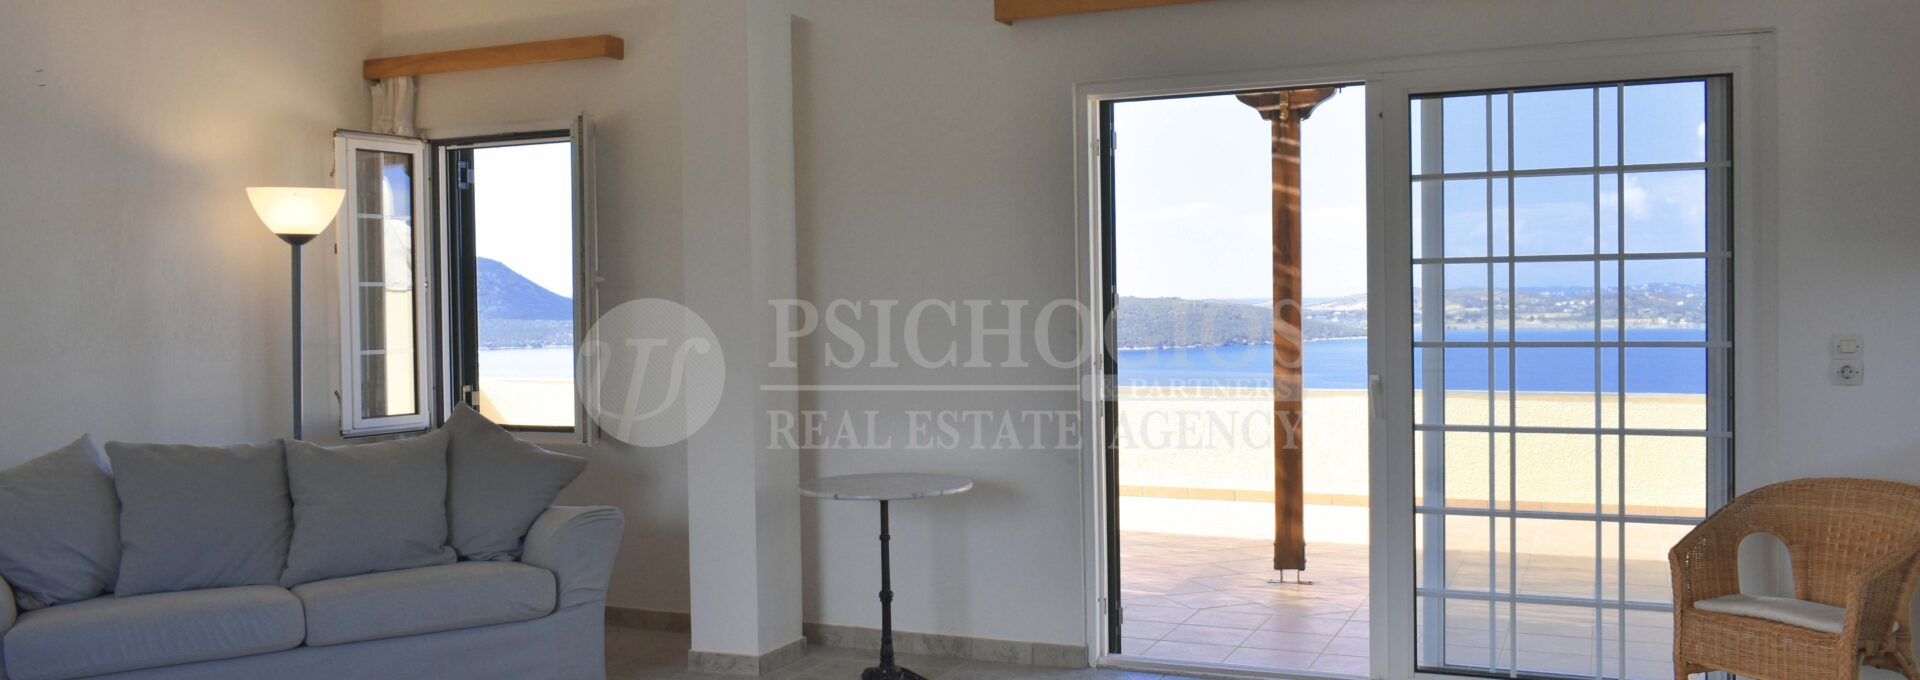 for_sale_house_223_square_meters_plot_730_square_meters_view_to_the_sea_ermioni_greece (6)